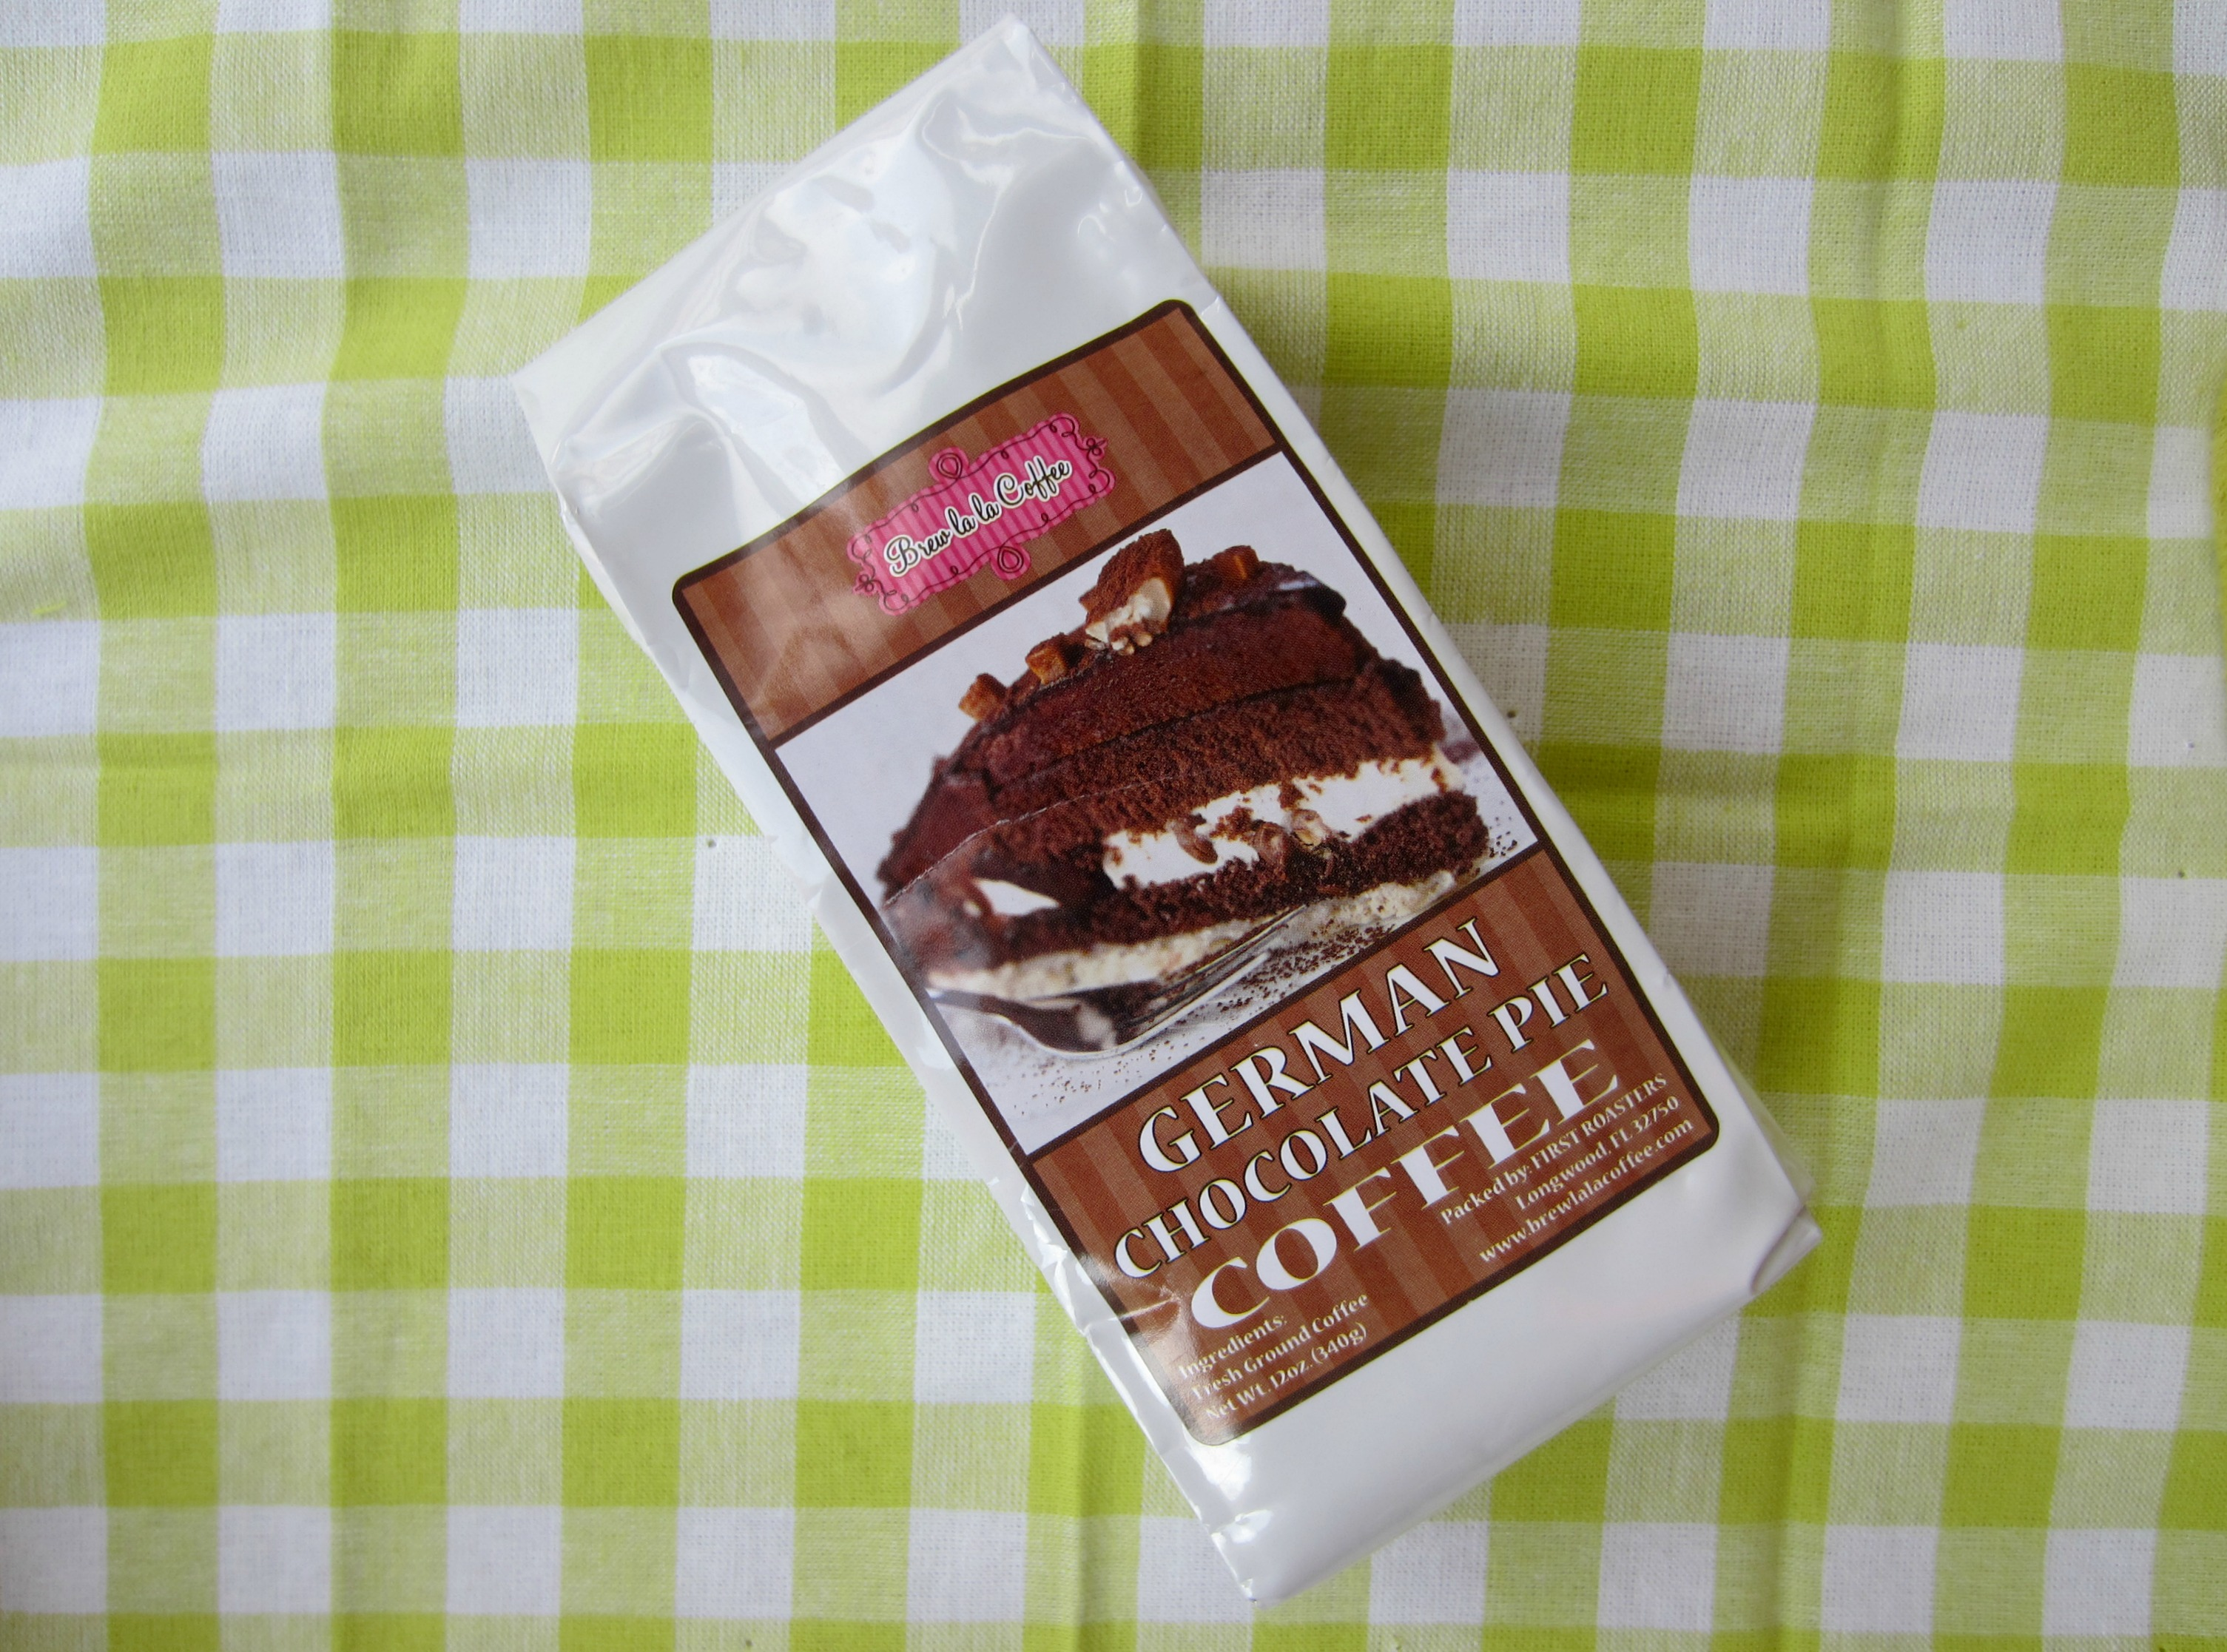 German chocolate coffee from home goods